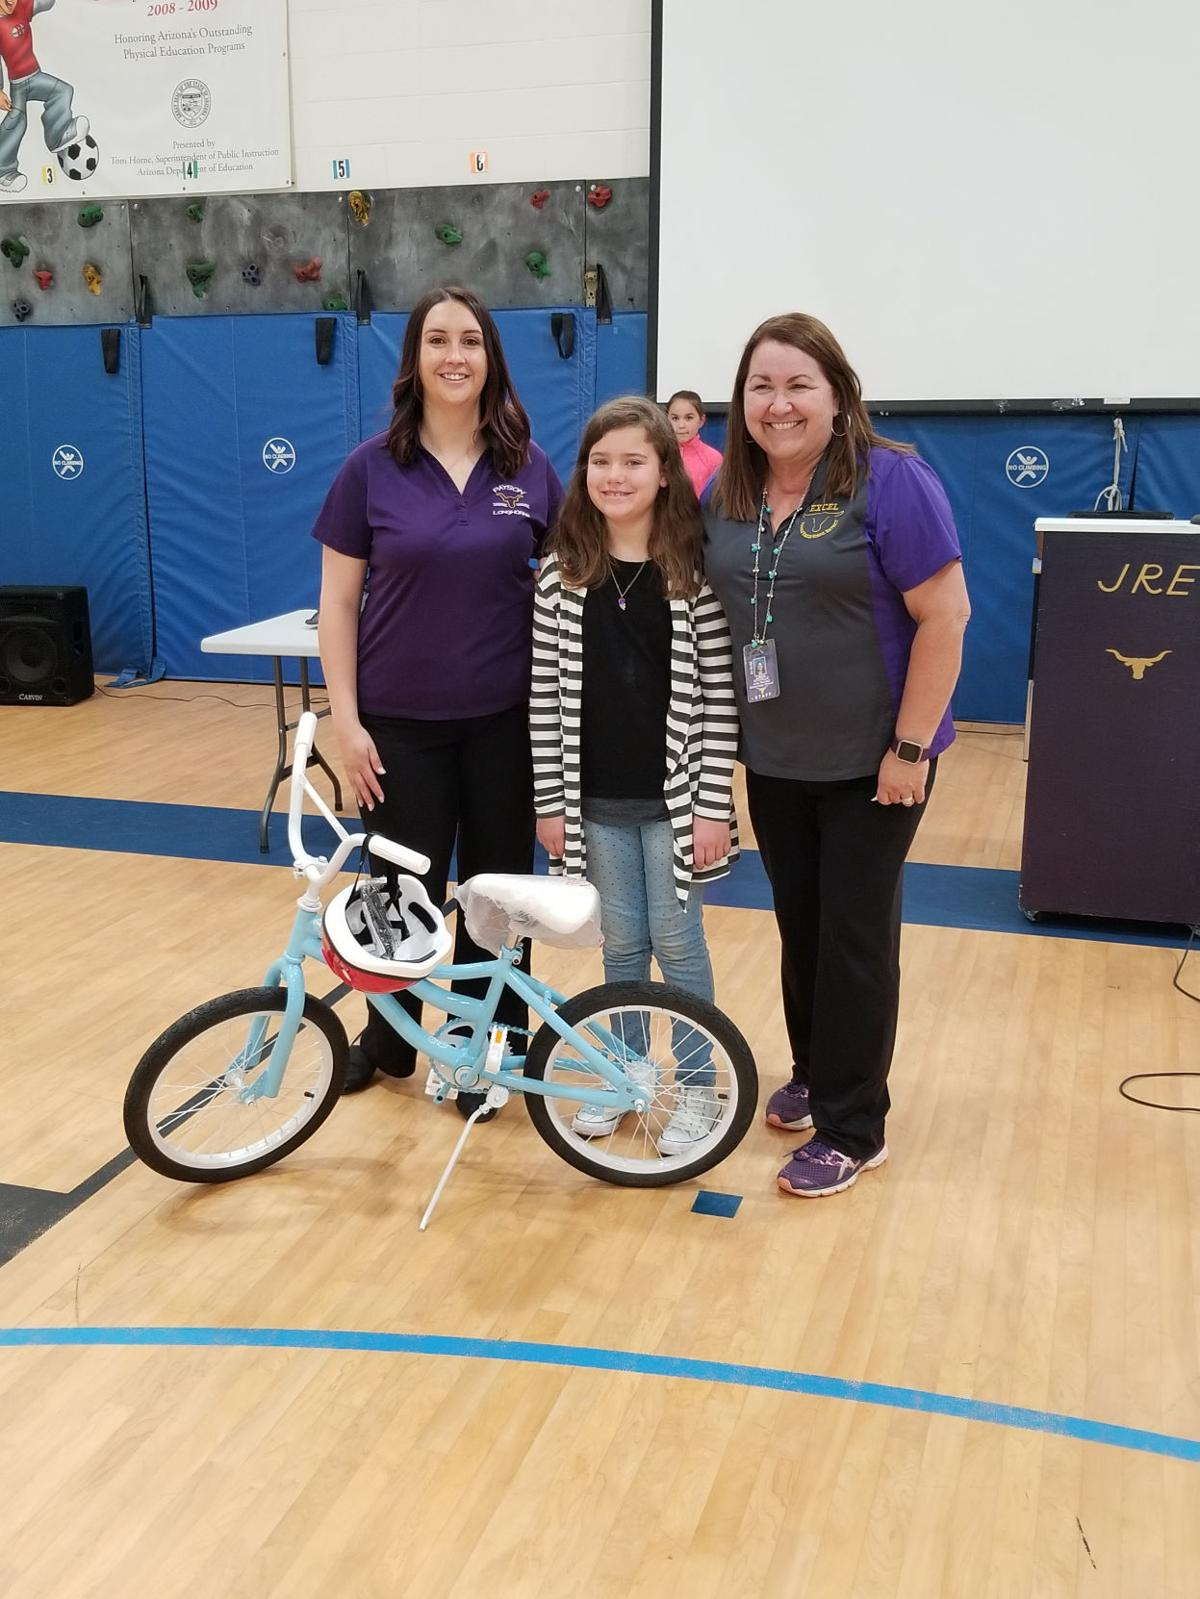 JRE Bicycle Safety Assembly bike winner - Sophia